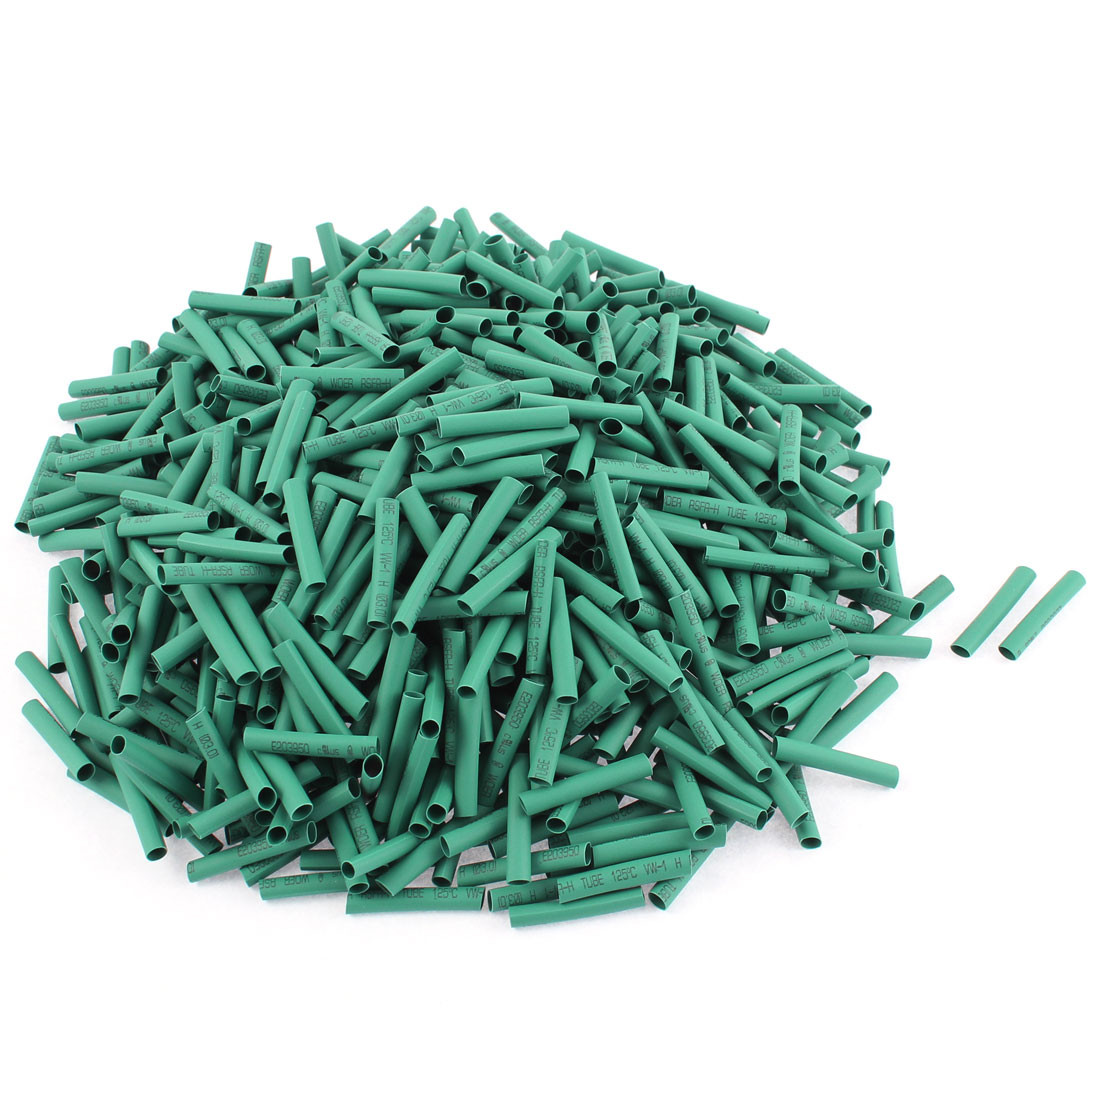 Electrical Connection Cable Sleeve 25mm Length Heat Shrink Tubing Green 800Pcs